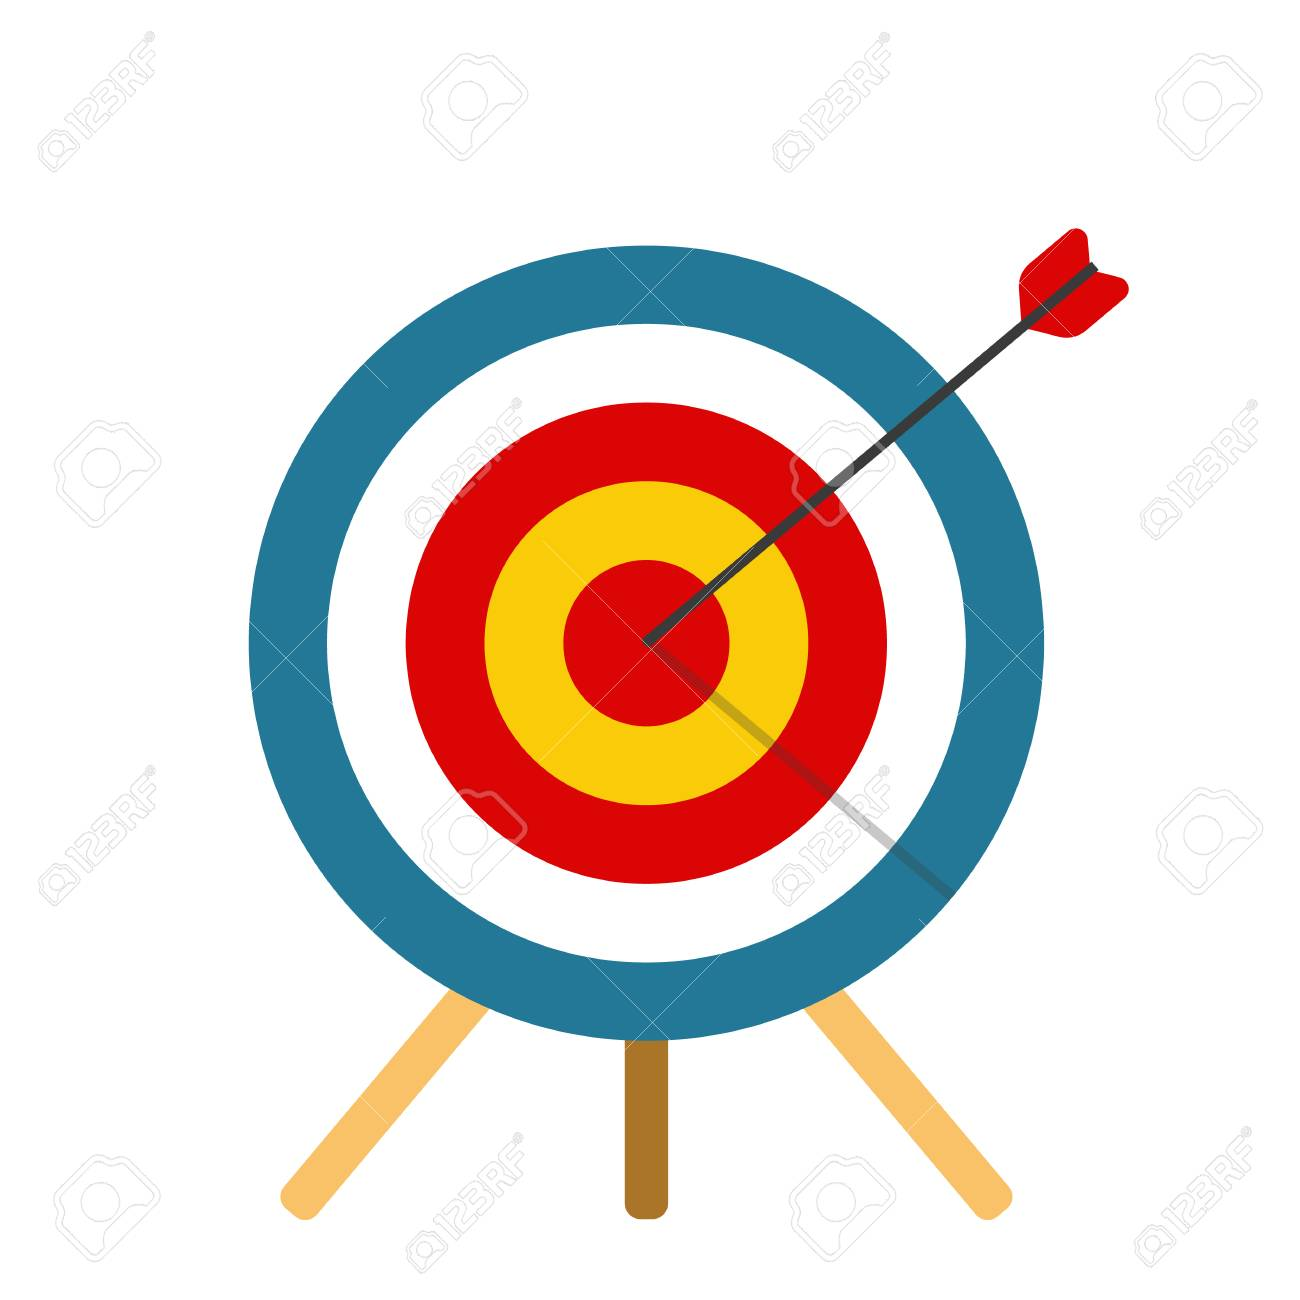 Shot on target Business or sports concept